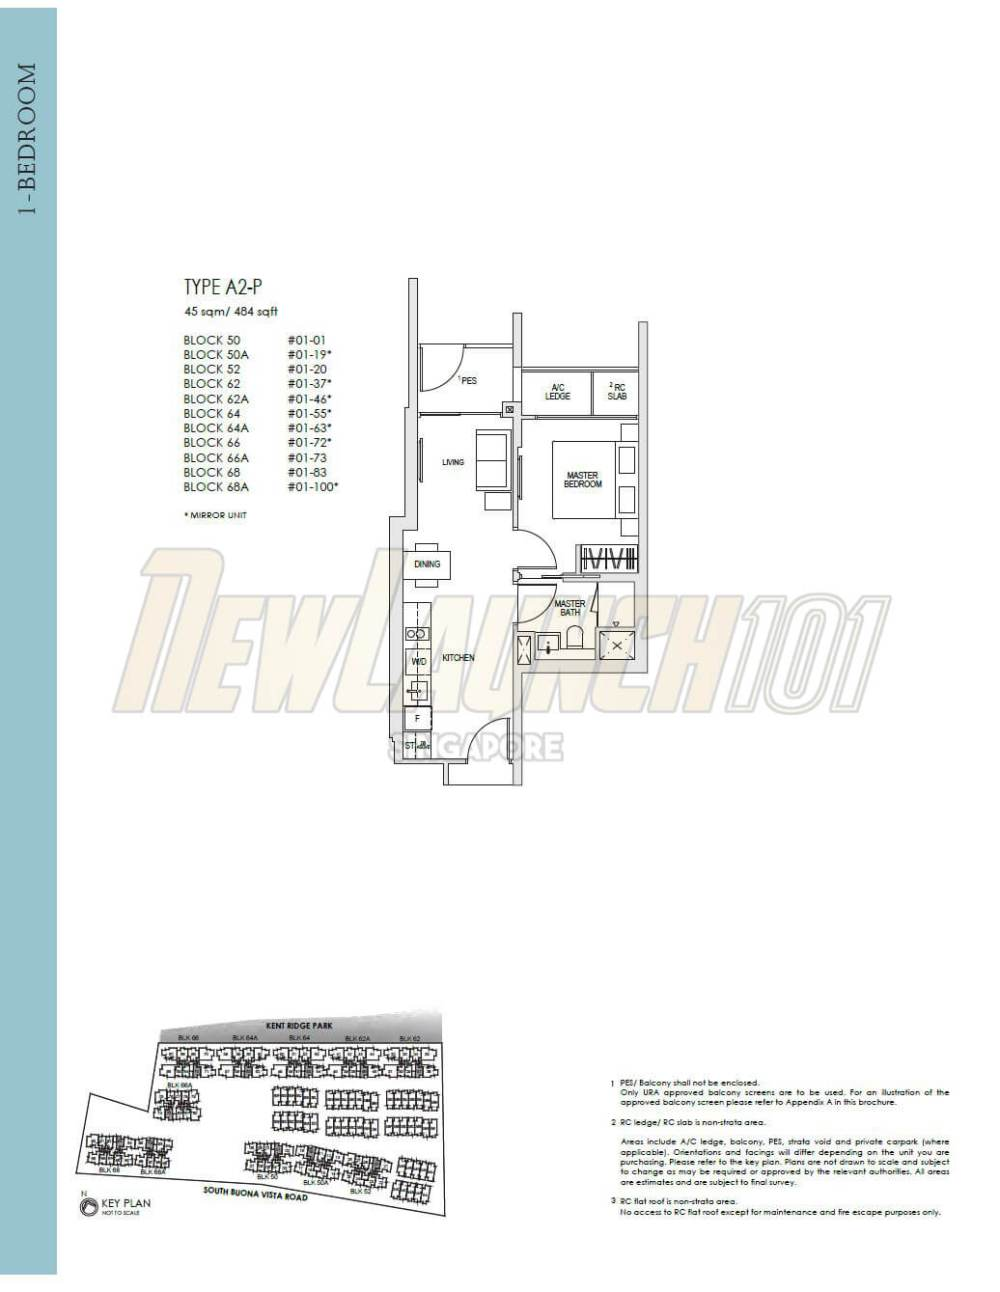 medium resolution of kent ridge hill residences floor plan 1 bedroom type a2 p